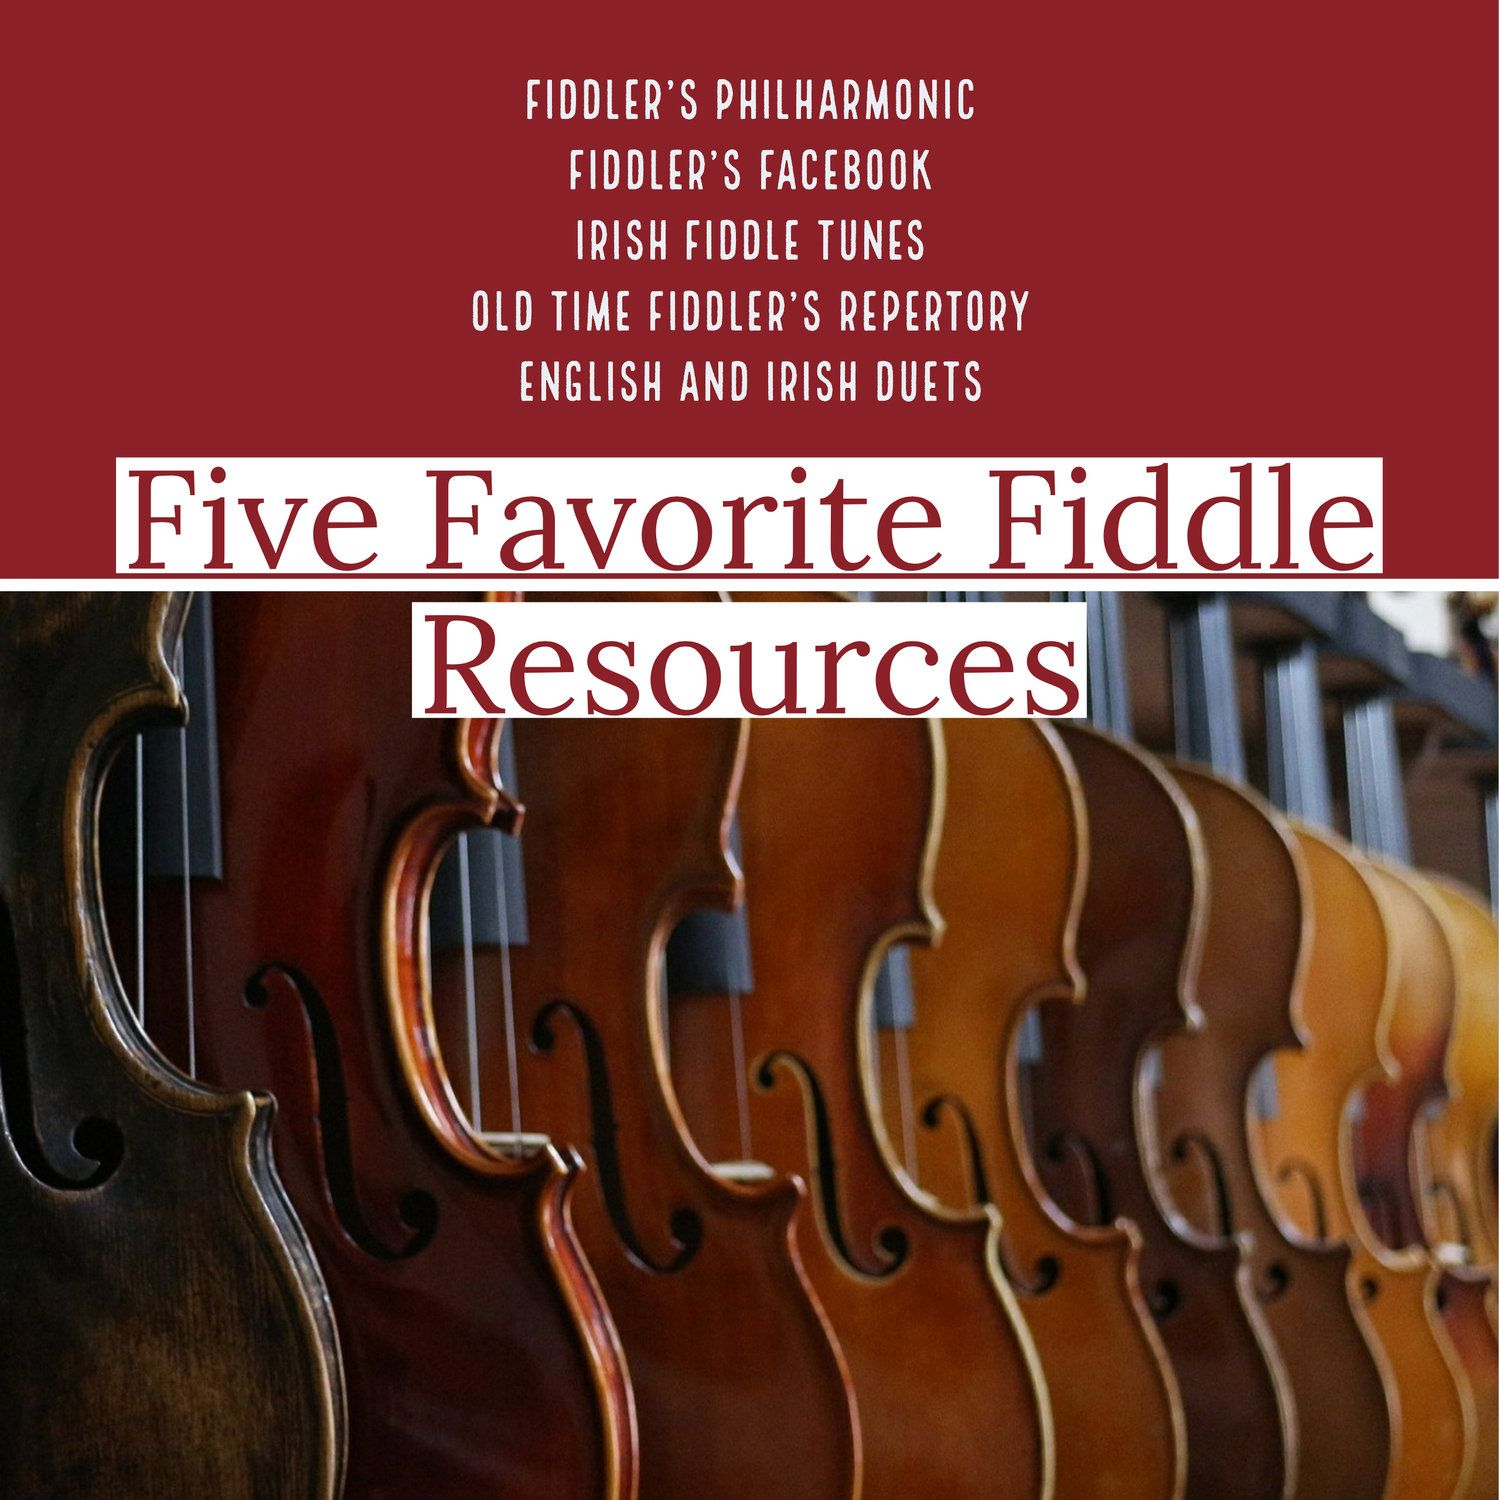 Just In Case You Re Looking For Some Good Collections To Inspire Your Program I Put Together This Short List Along Wi Fiddle Tunes Violin Lessons Violin Songs